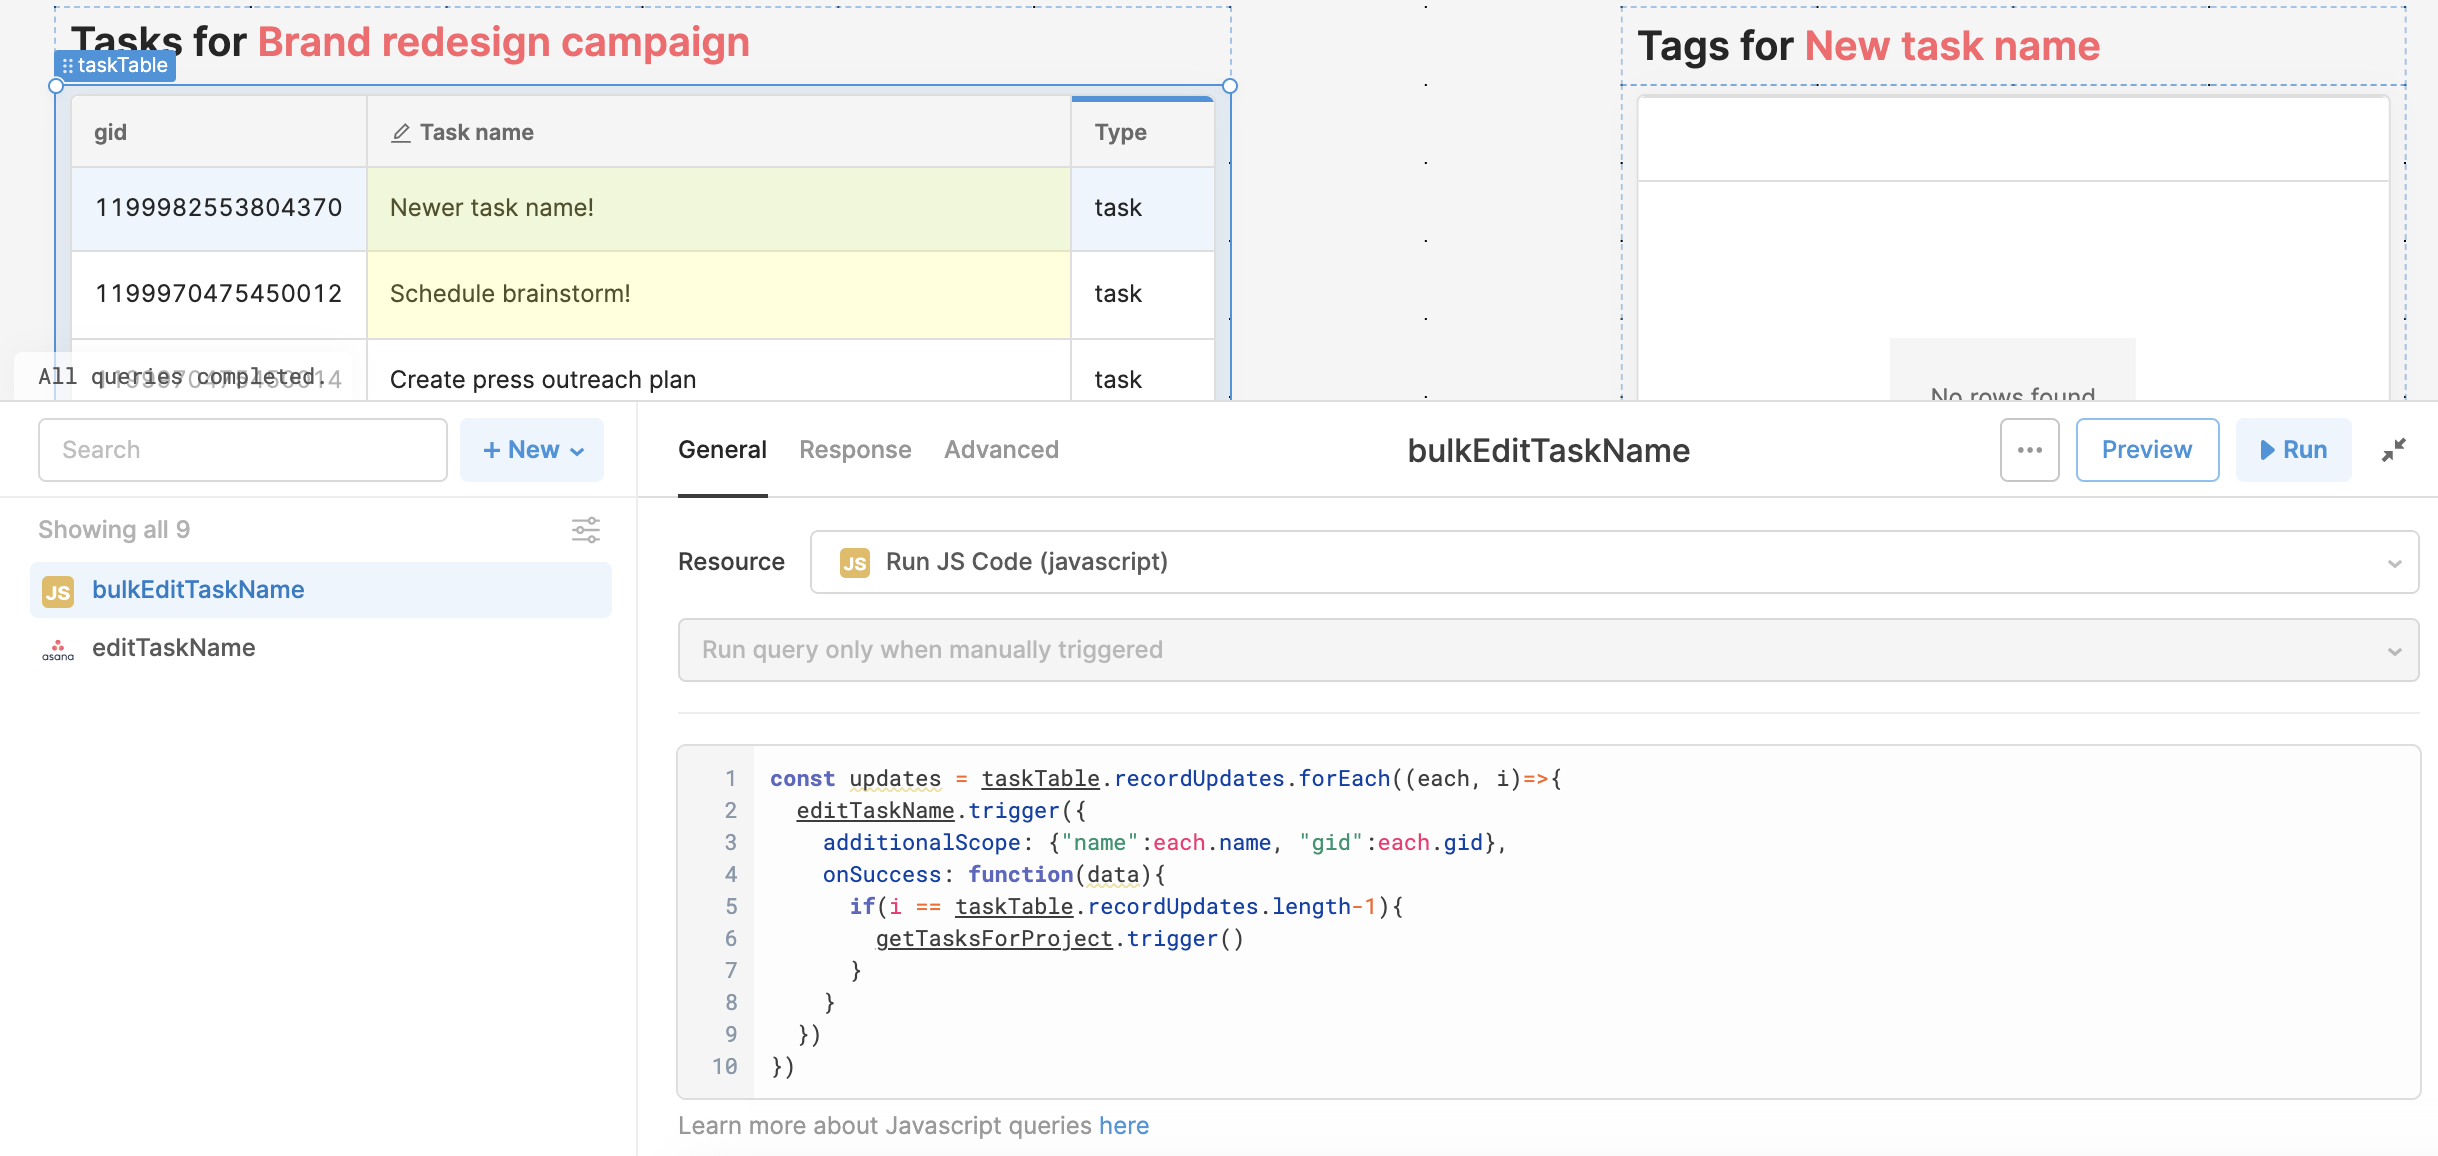 JS query to trigger the `editTaskName` query, with the name and gid passed in for each row.